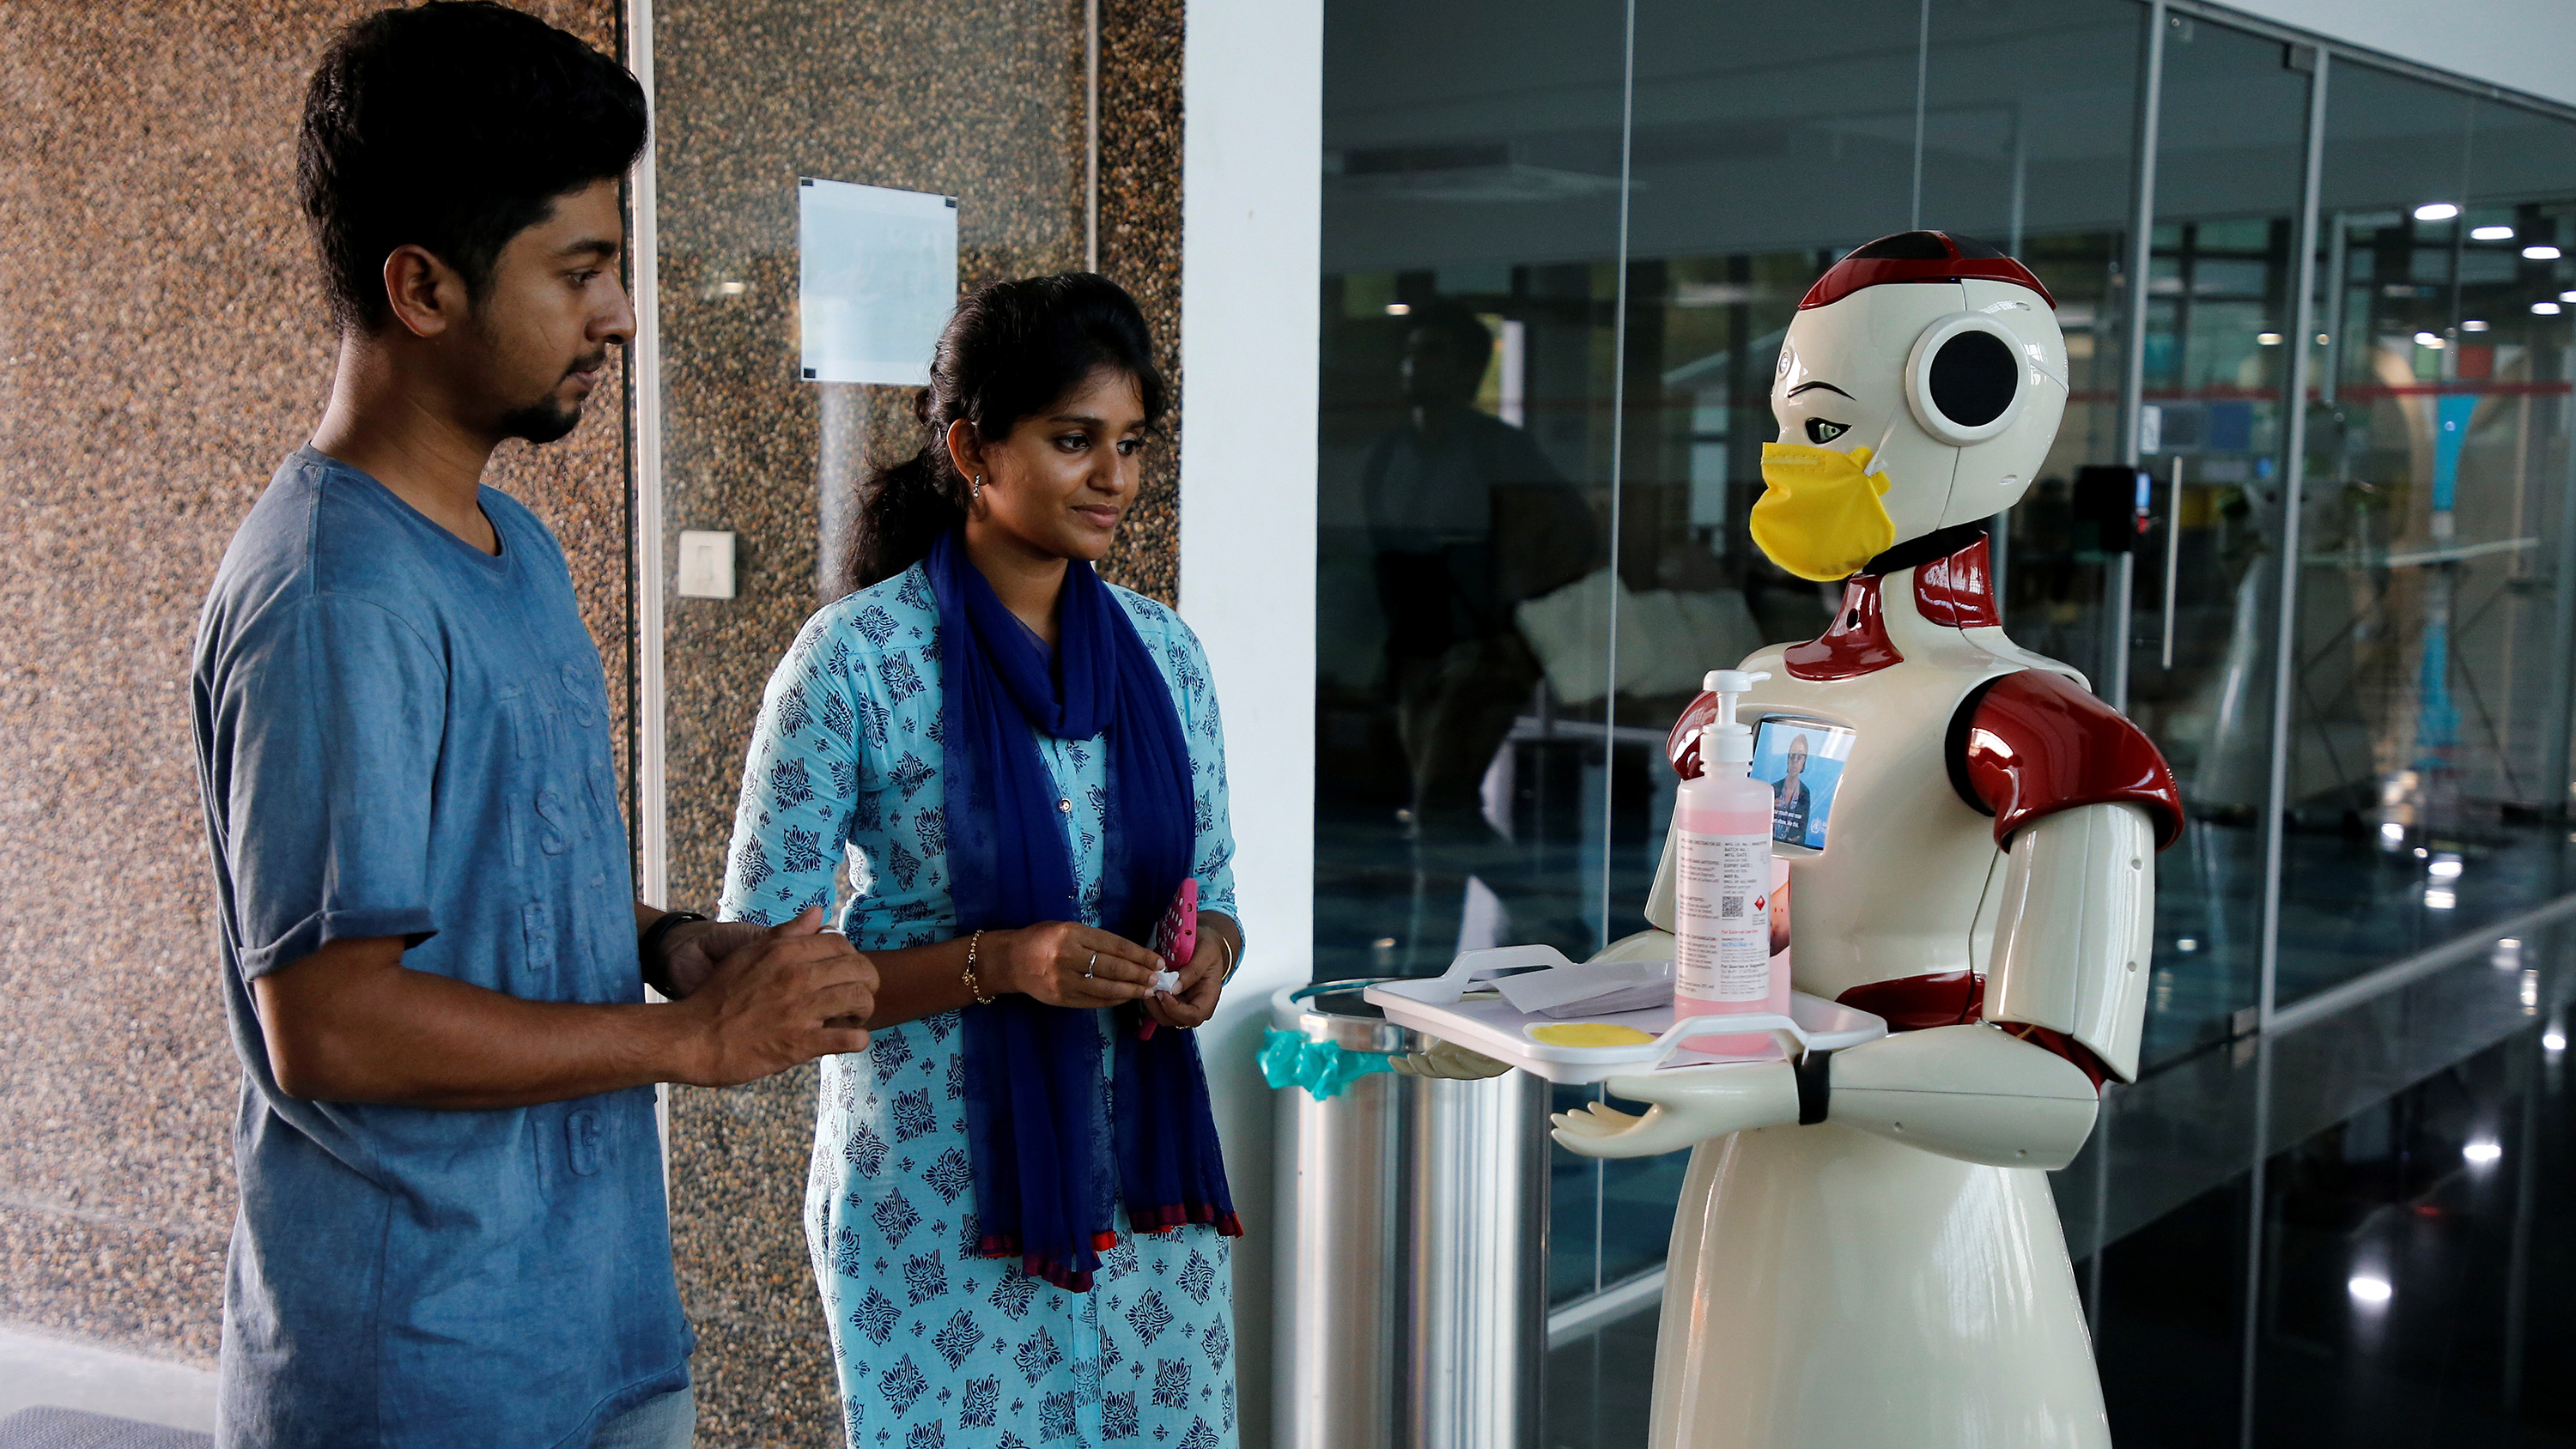 The photo shows two people smiling as they interact with the large, slick robot.